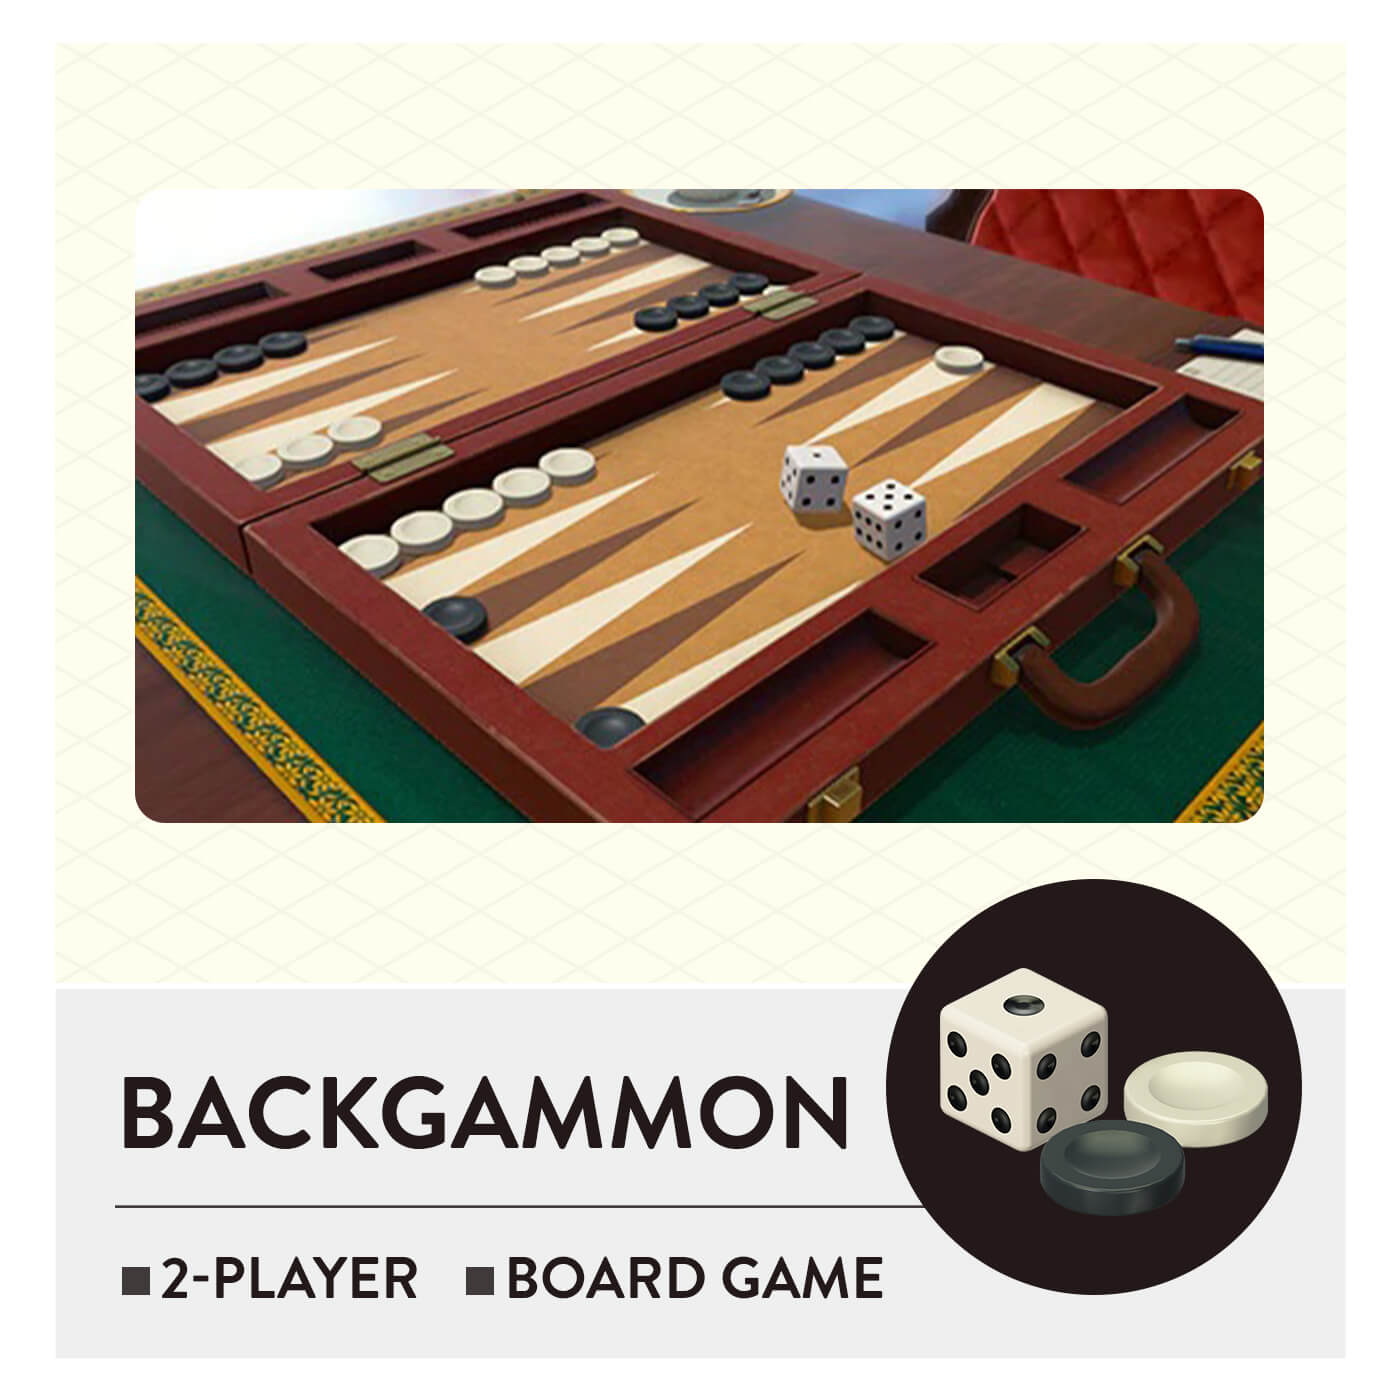 51 Worldwide Games - Backgammon